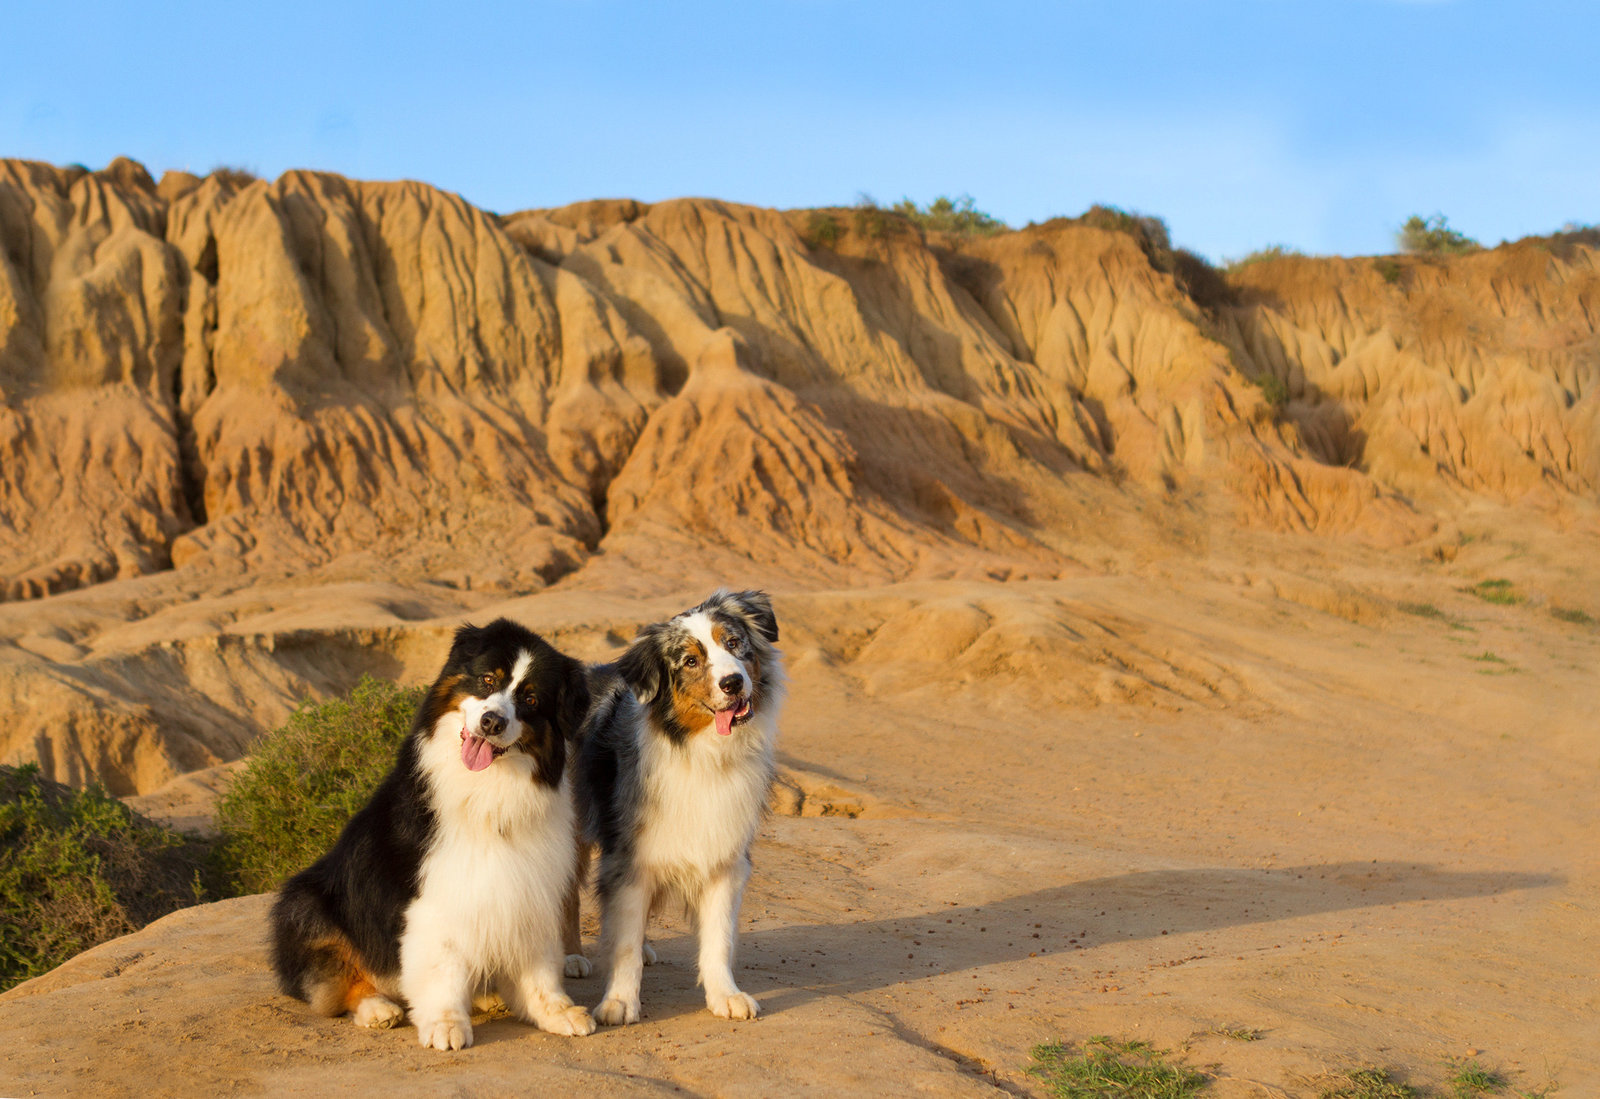 Dogs in nature in San Diego, CA